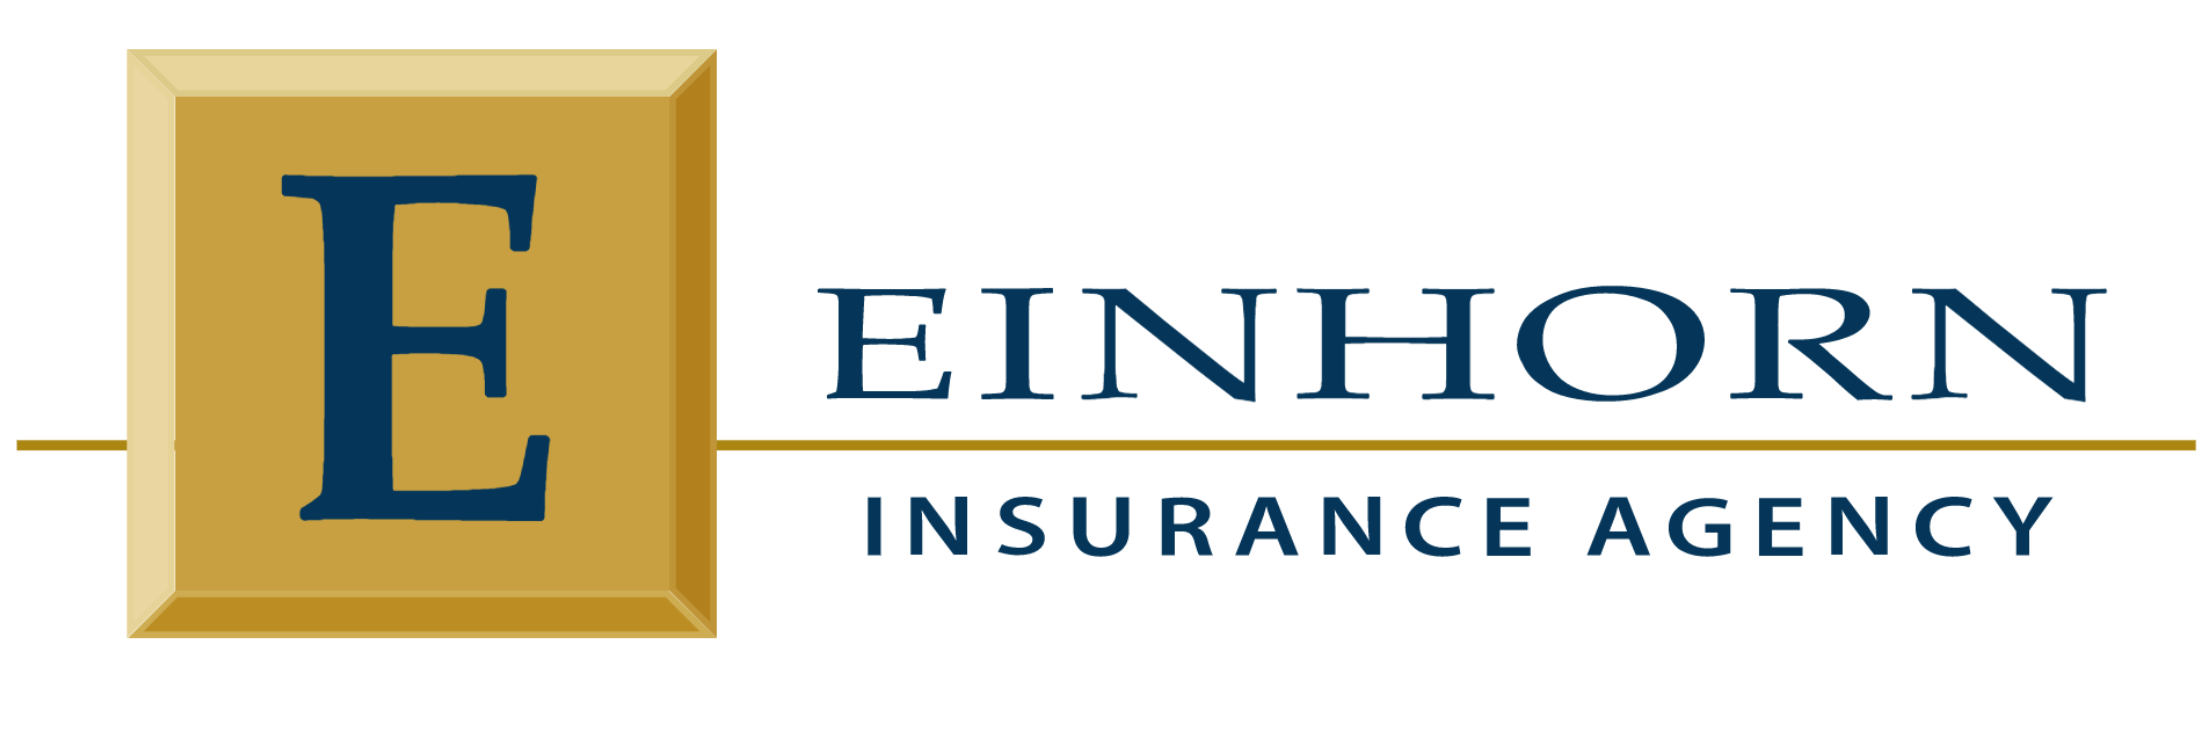 Einhorn Insurance Announces Extended Insurance Grace Periods on Homeowners Insurance and Other Policies in California